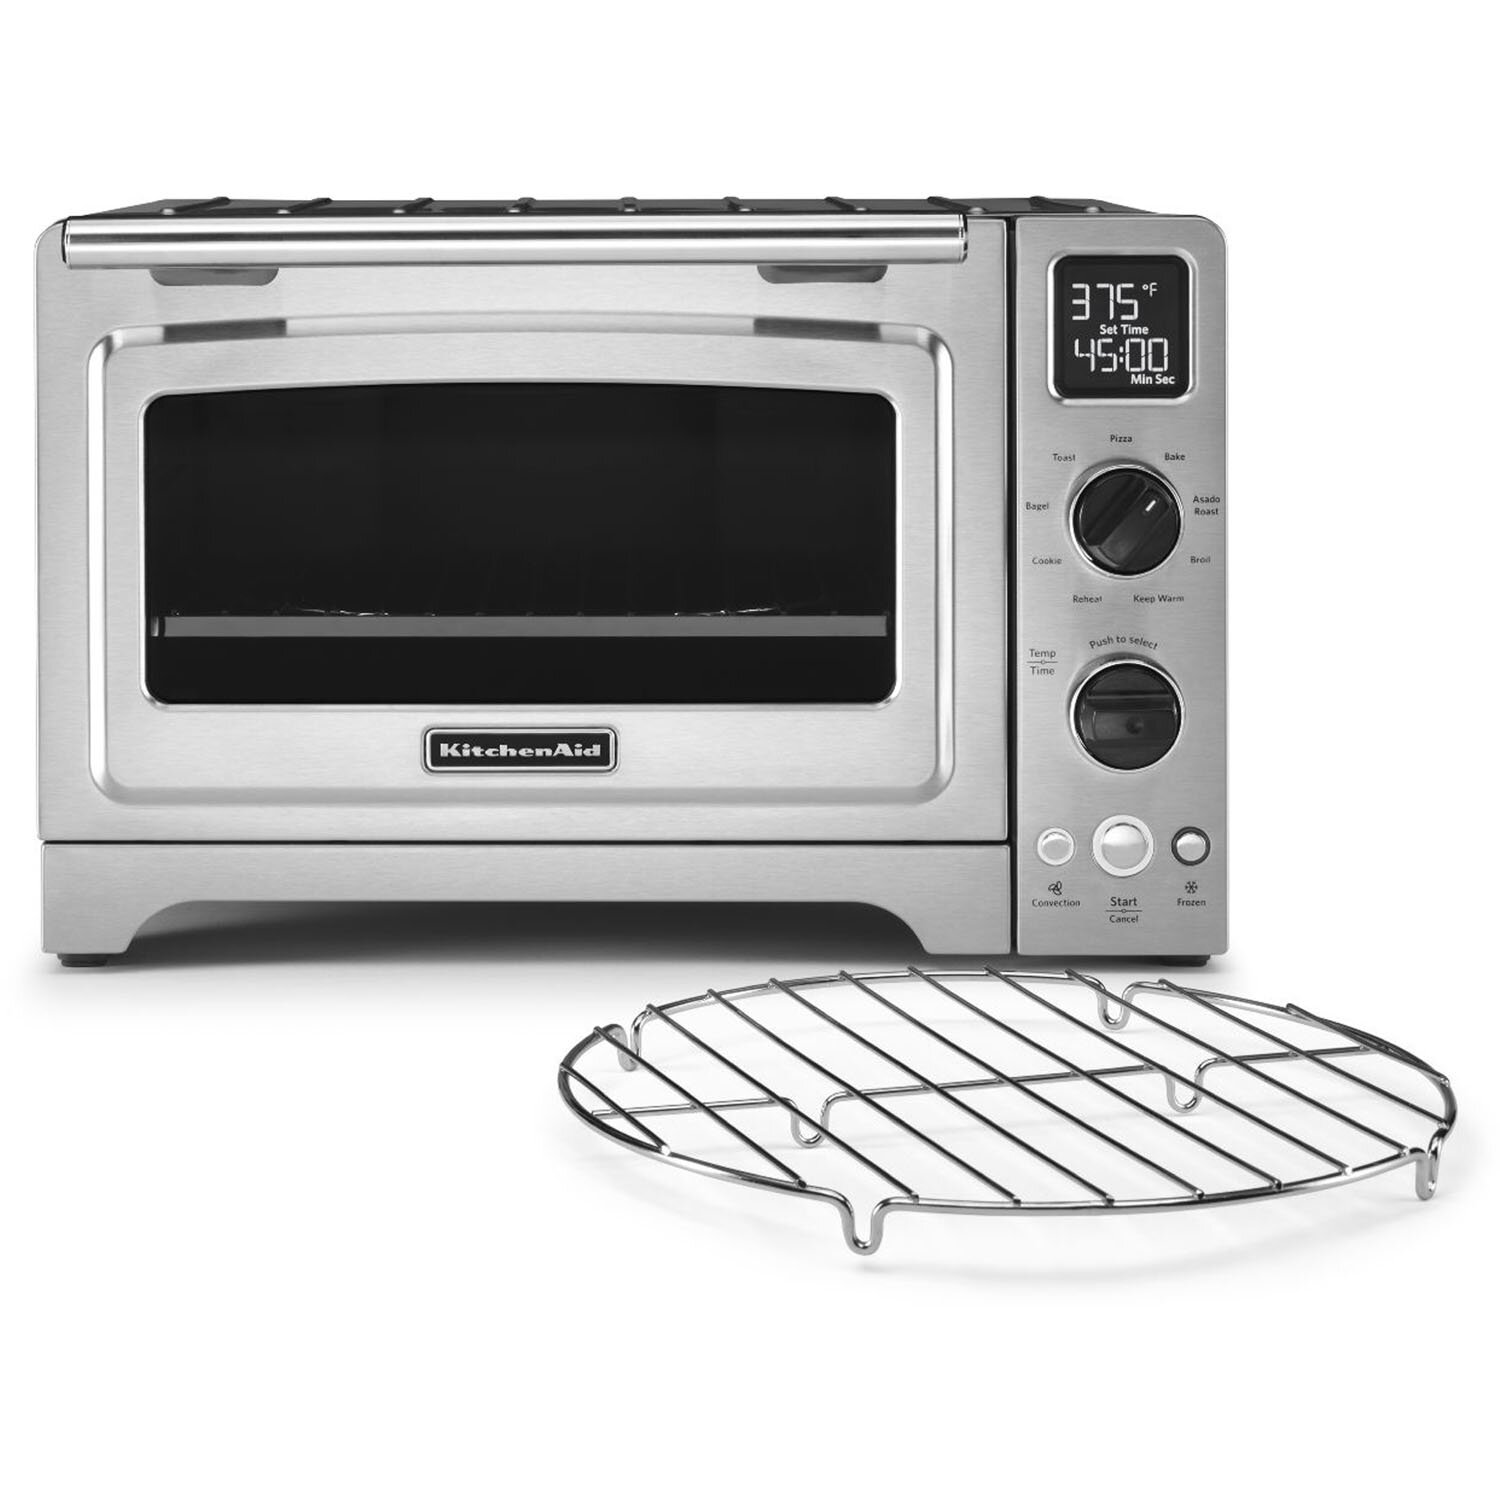 Countertop Convection Oven Kitchenaid : KitchenAid 1 Cubic Foot Stainless Steel Convection Countertop Oven ...